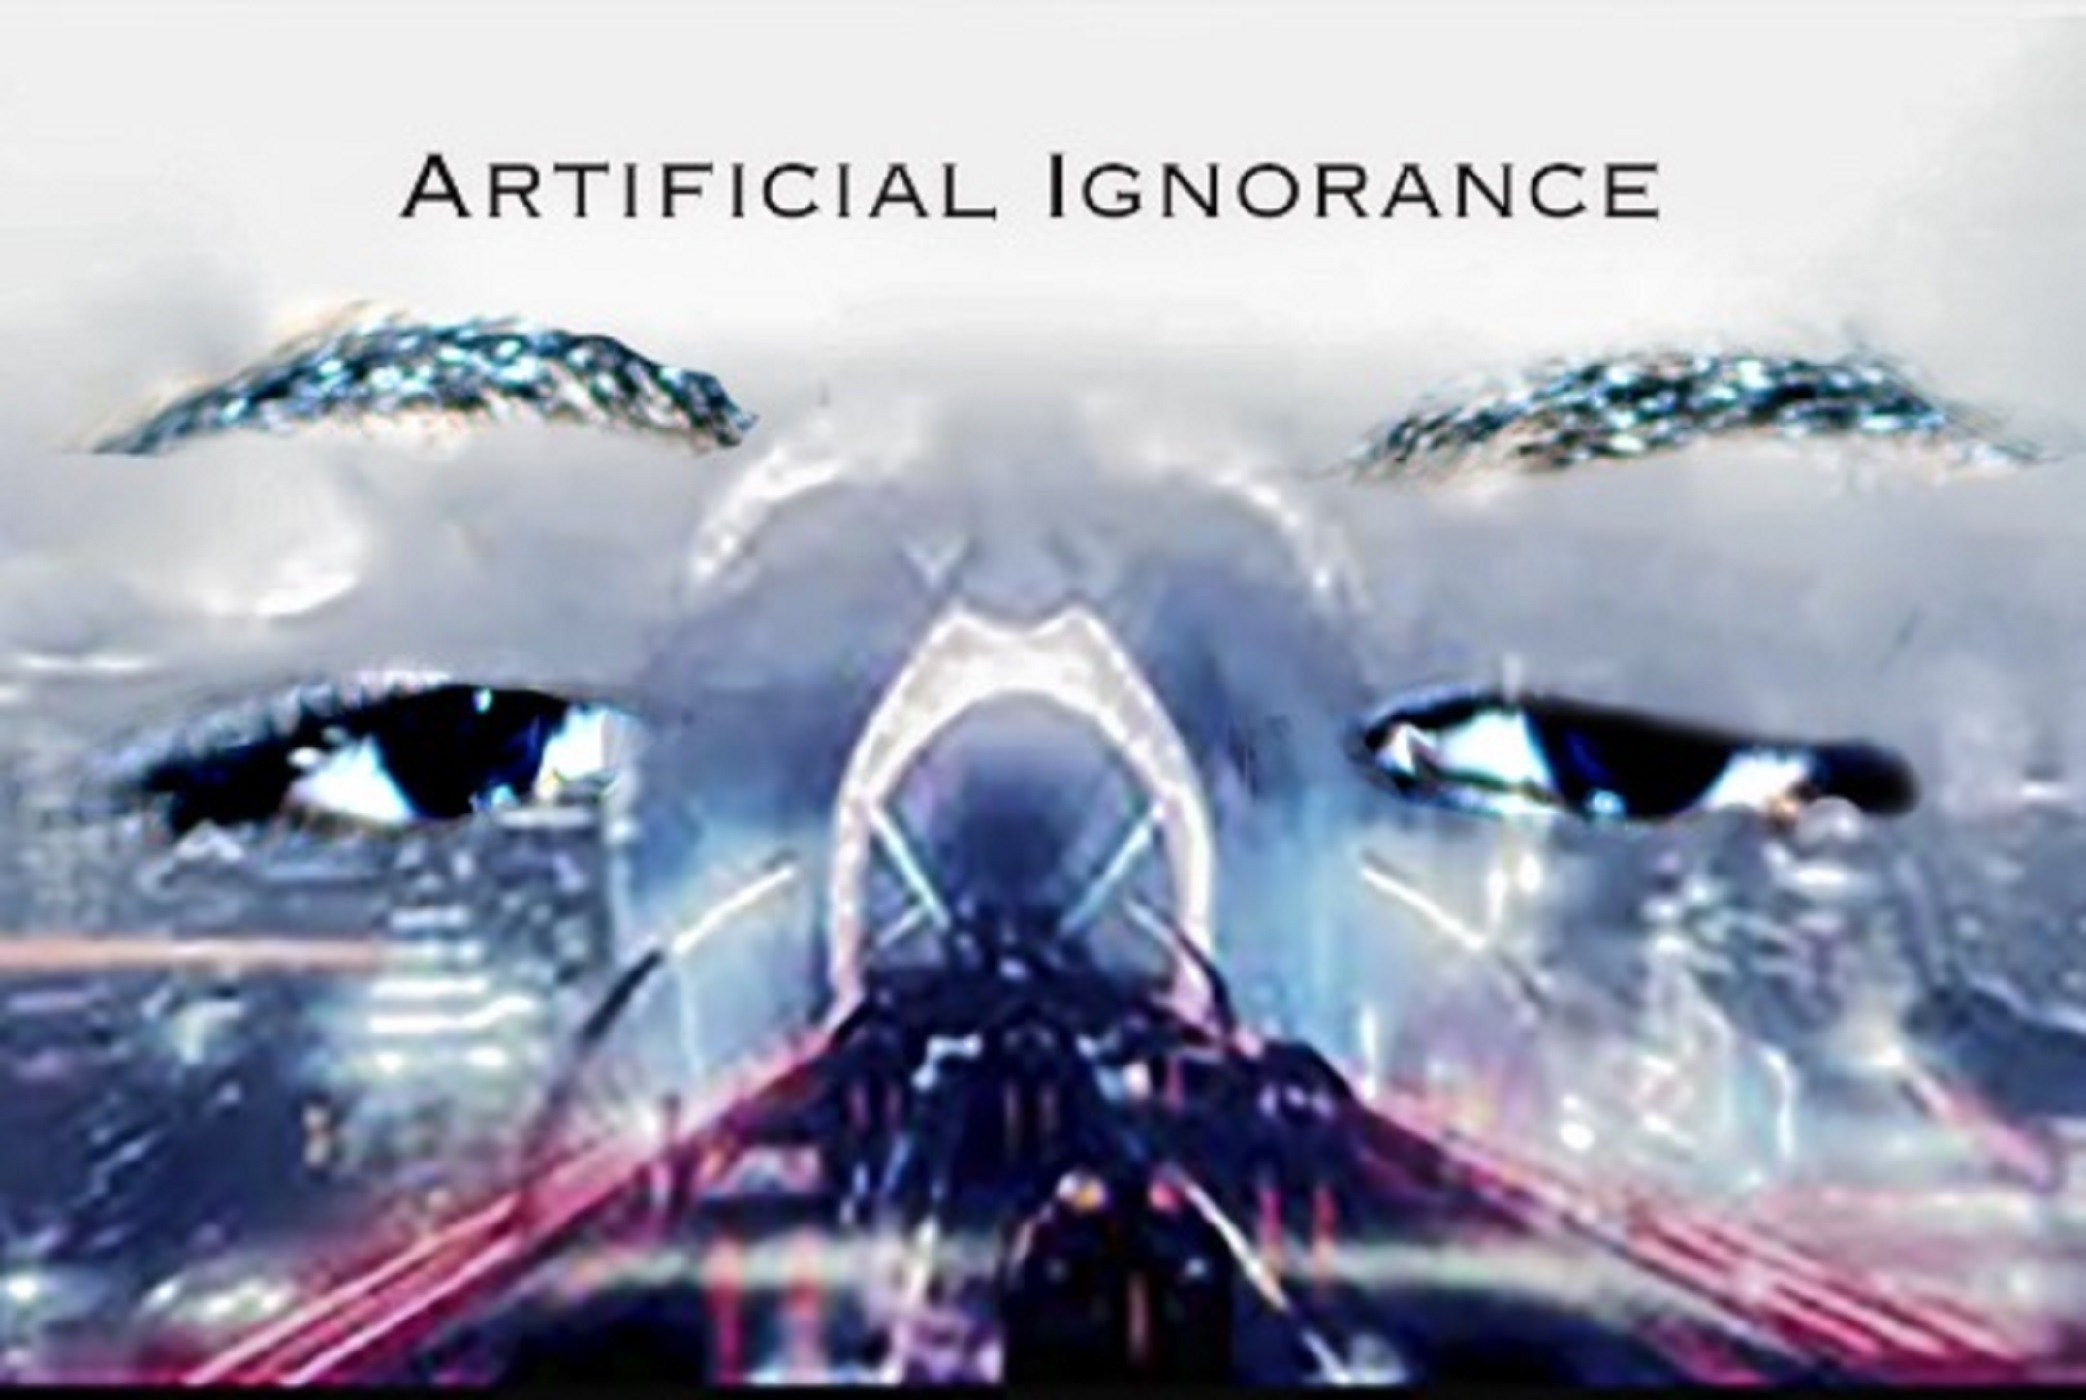 Artificial Ignorance